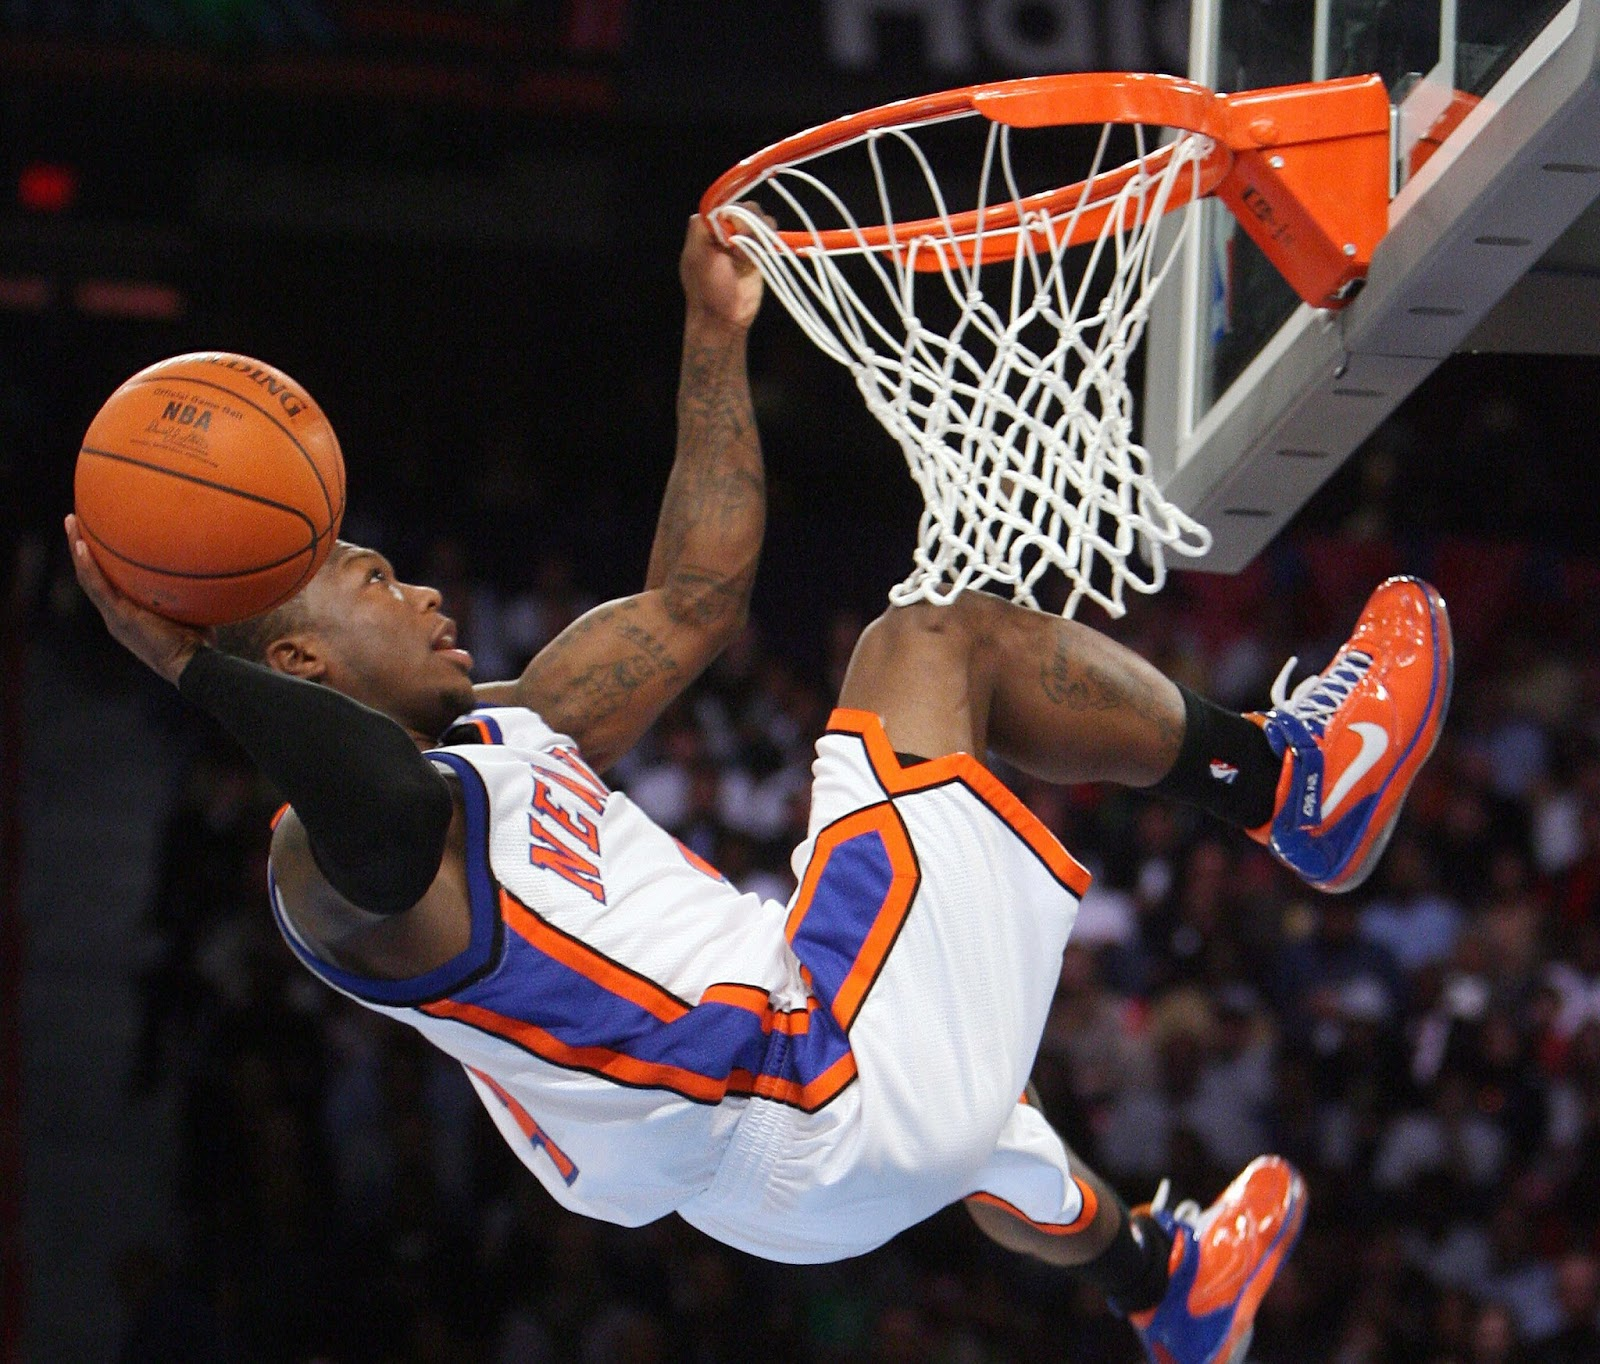 theKONGBLOG™: Nate Robinson's NBA -to- NFL Crossover?